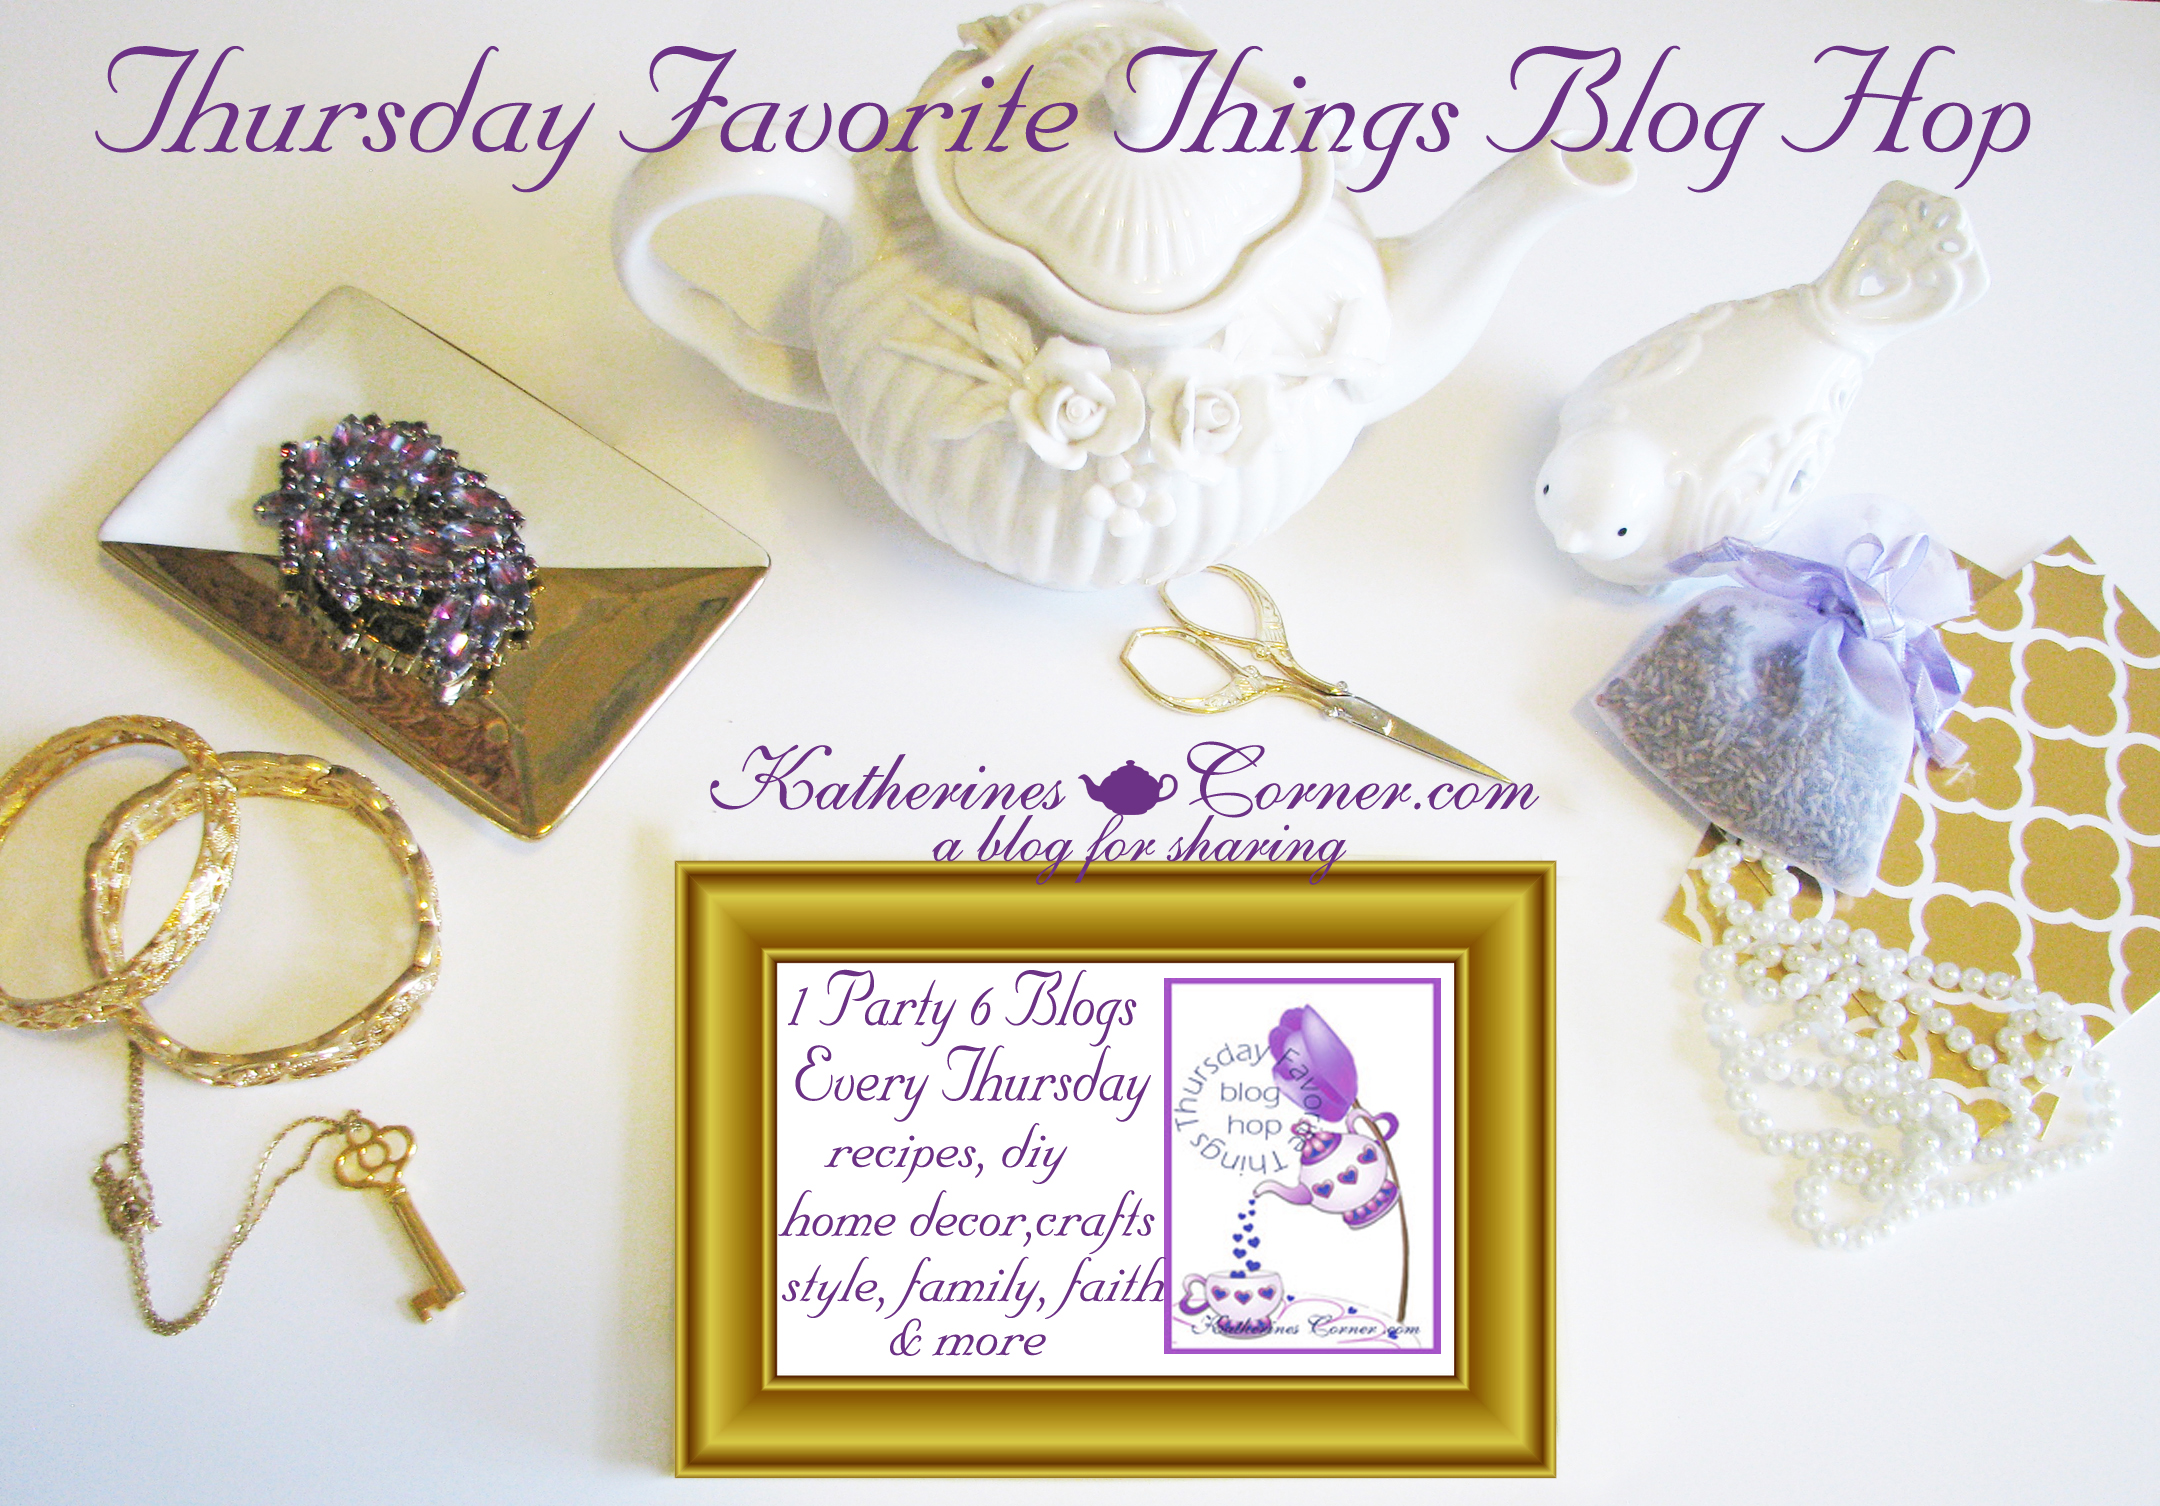 Thursday Favorite Things Blog Hop 203